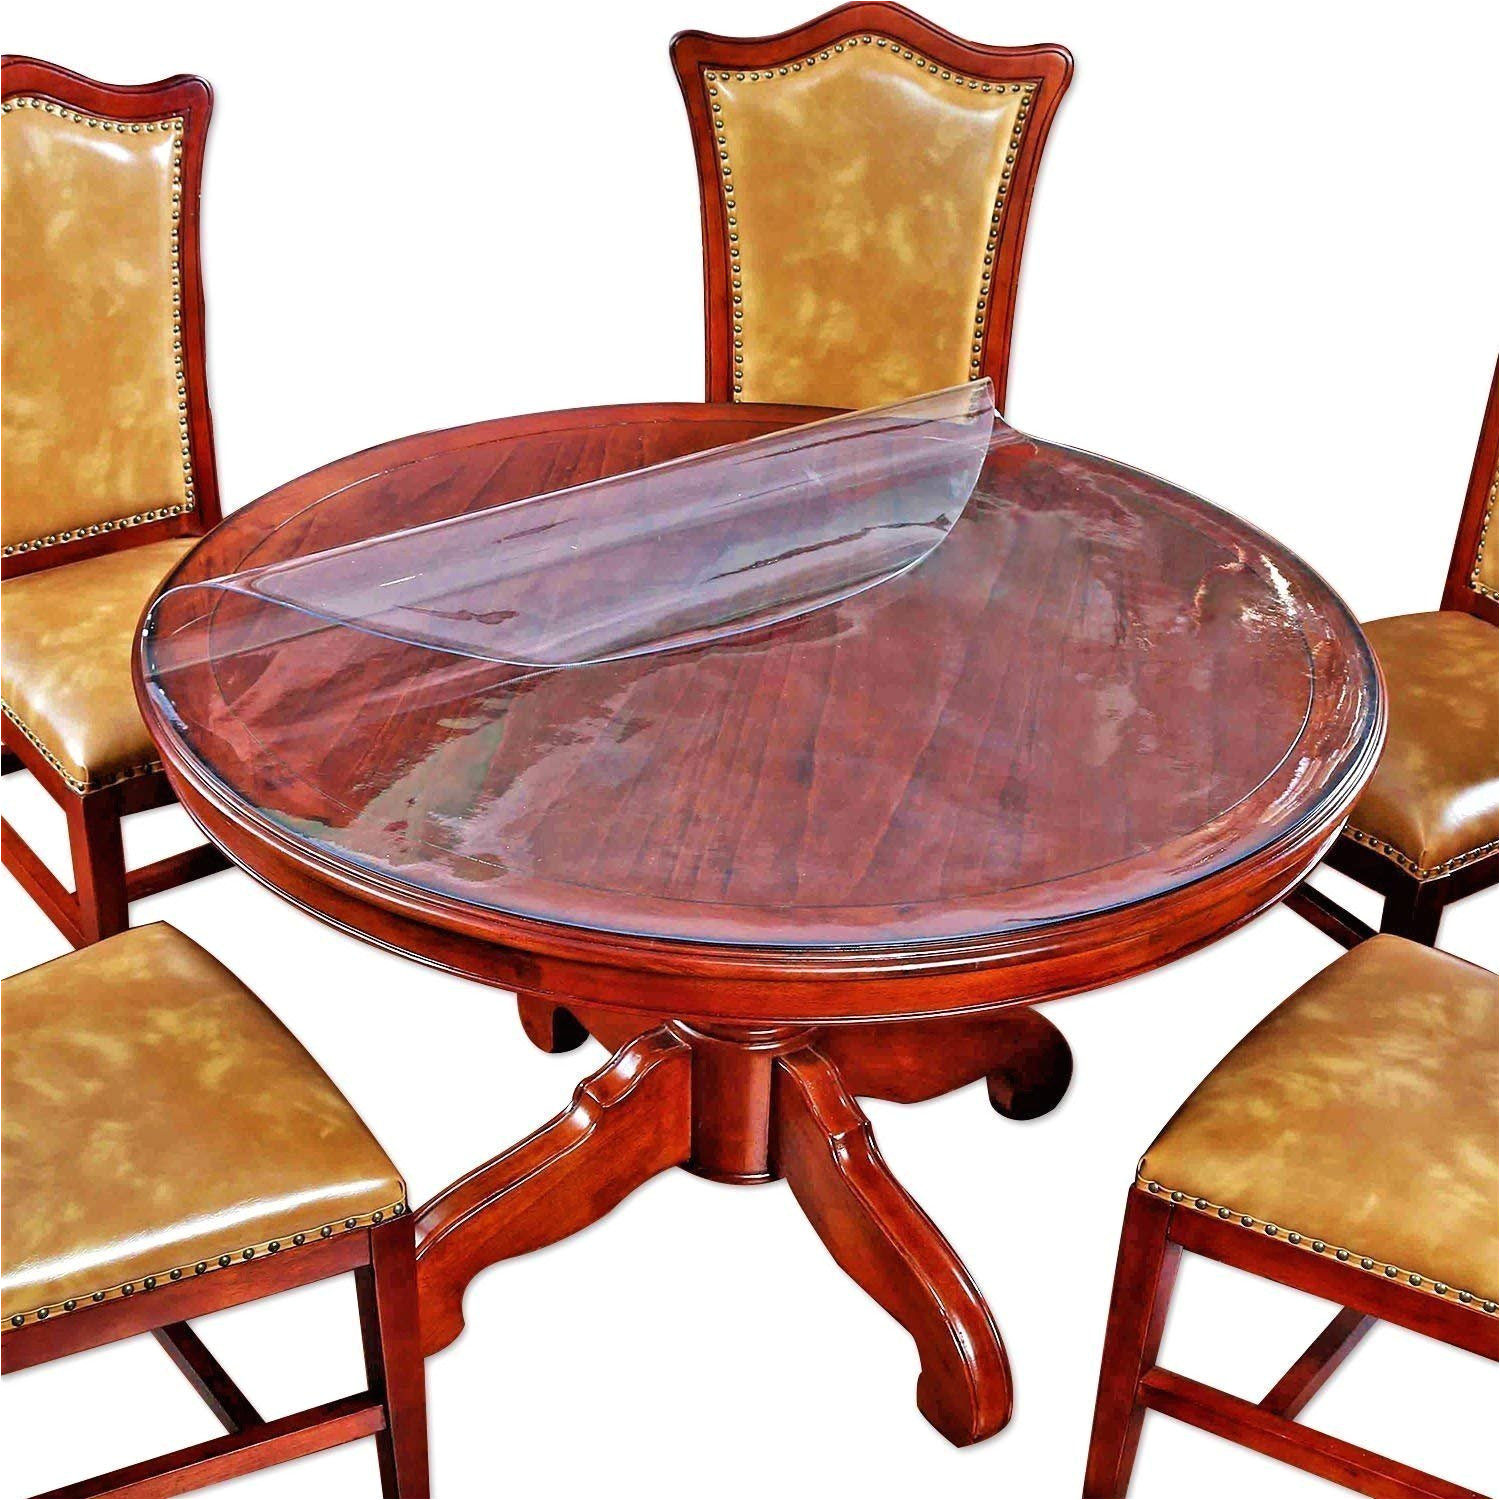 amazon com round table protector furniture clear plastic protector circle tablecloth cloths cover pvc vinyl waterproof wipeable heat resistant pad mats rug